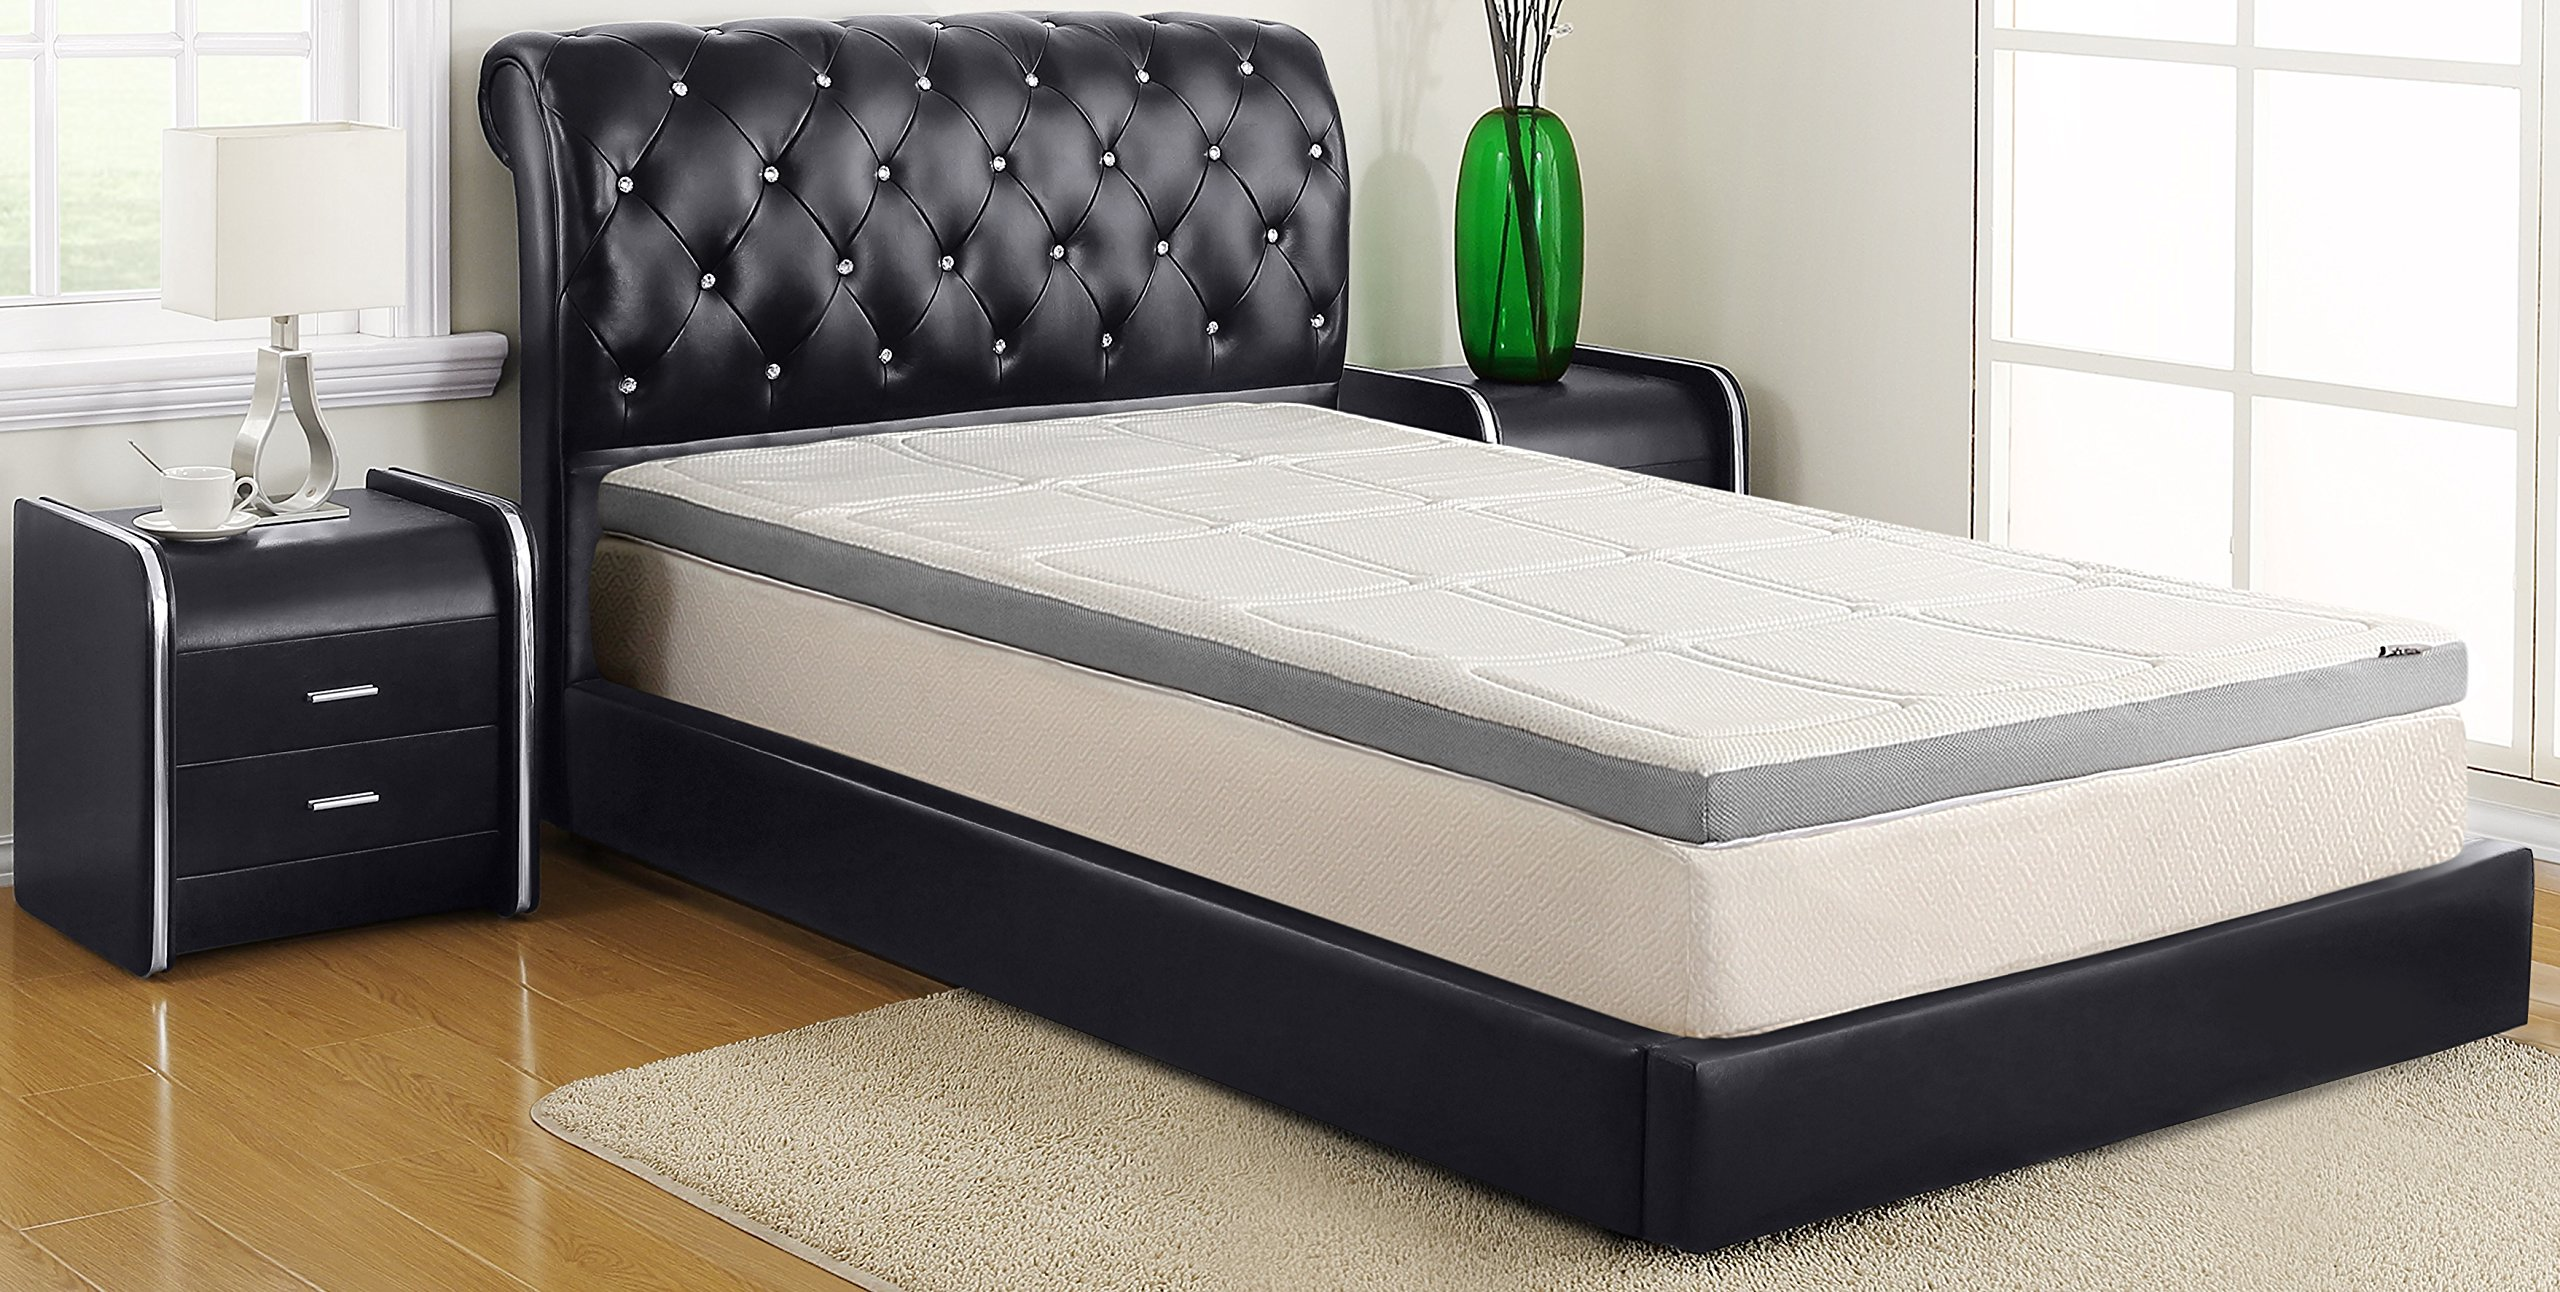 ALLRANGE 3-Inch Luxury Lurex Quilted Memory Foam Mattress Topper, Removable Quilted Cover, Mesh Gusset Sides, Hypoallergenic, Rolled Package, Full Size